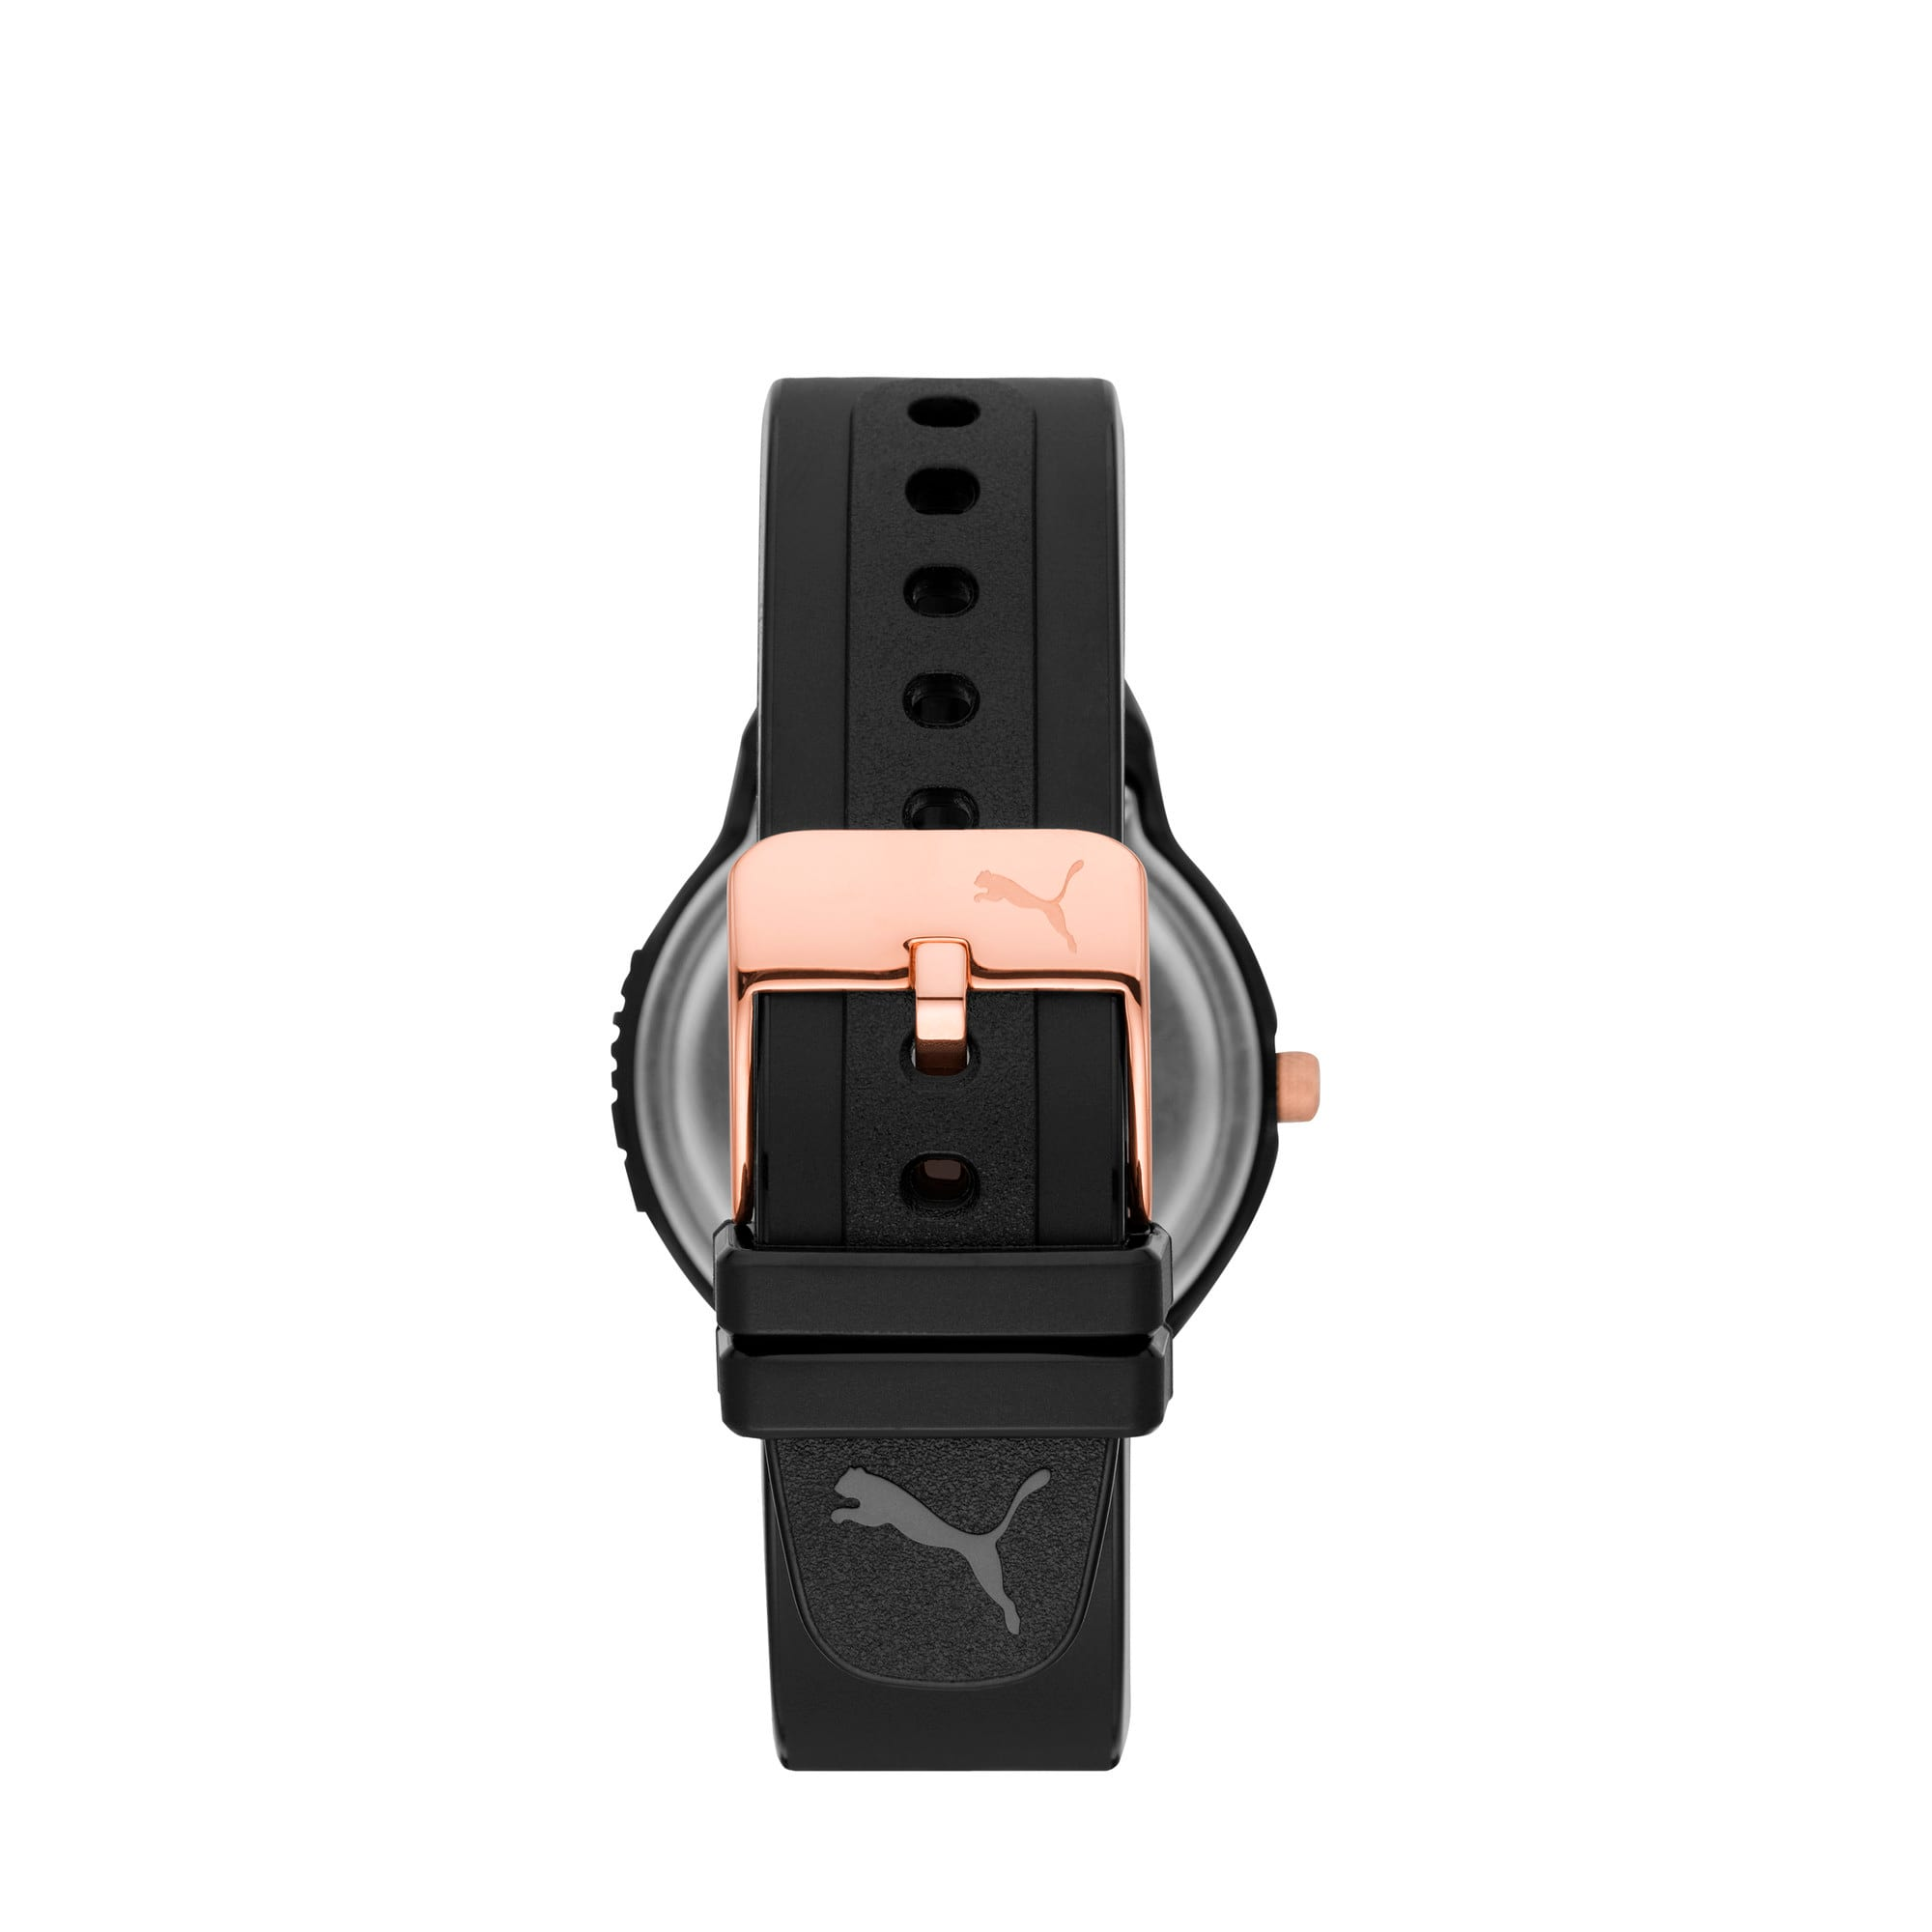 Thumbnail 3 of Reset v2 Watch, Black/Black, medium